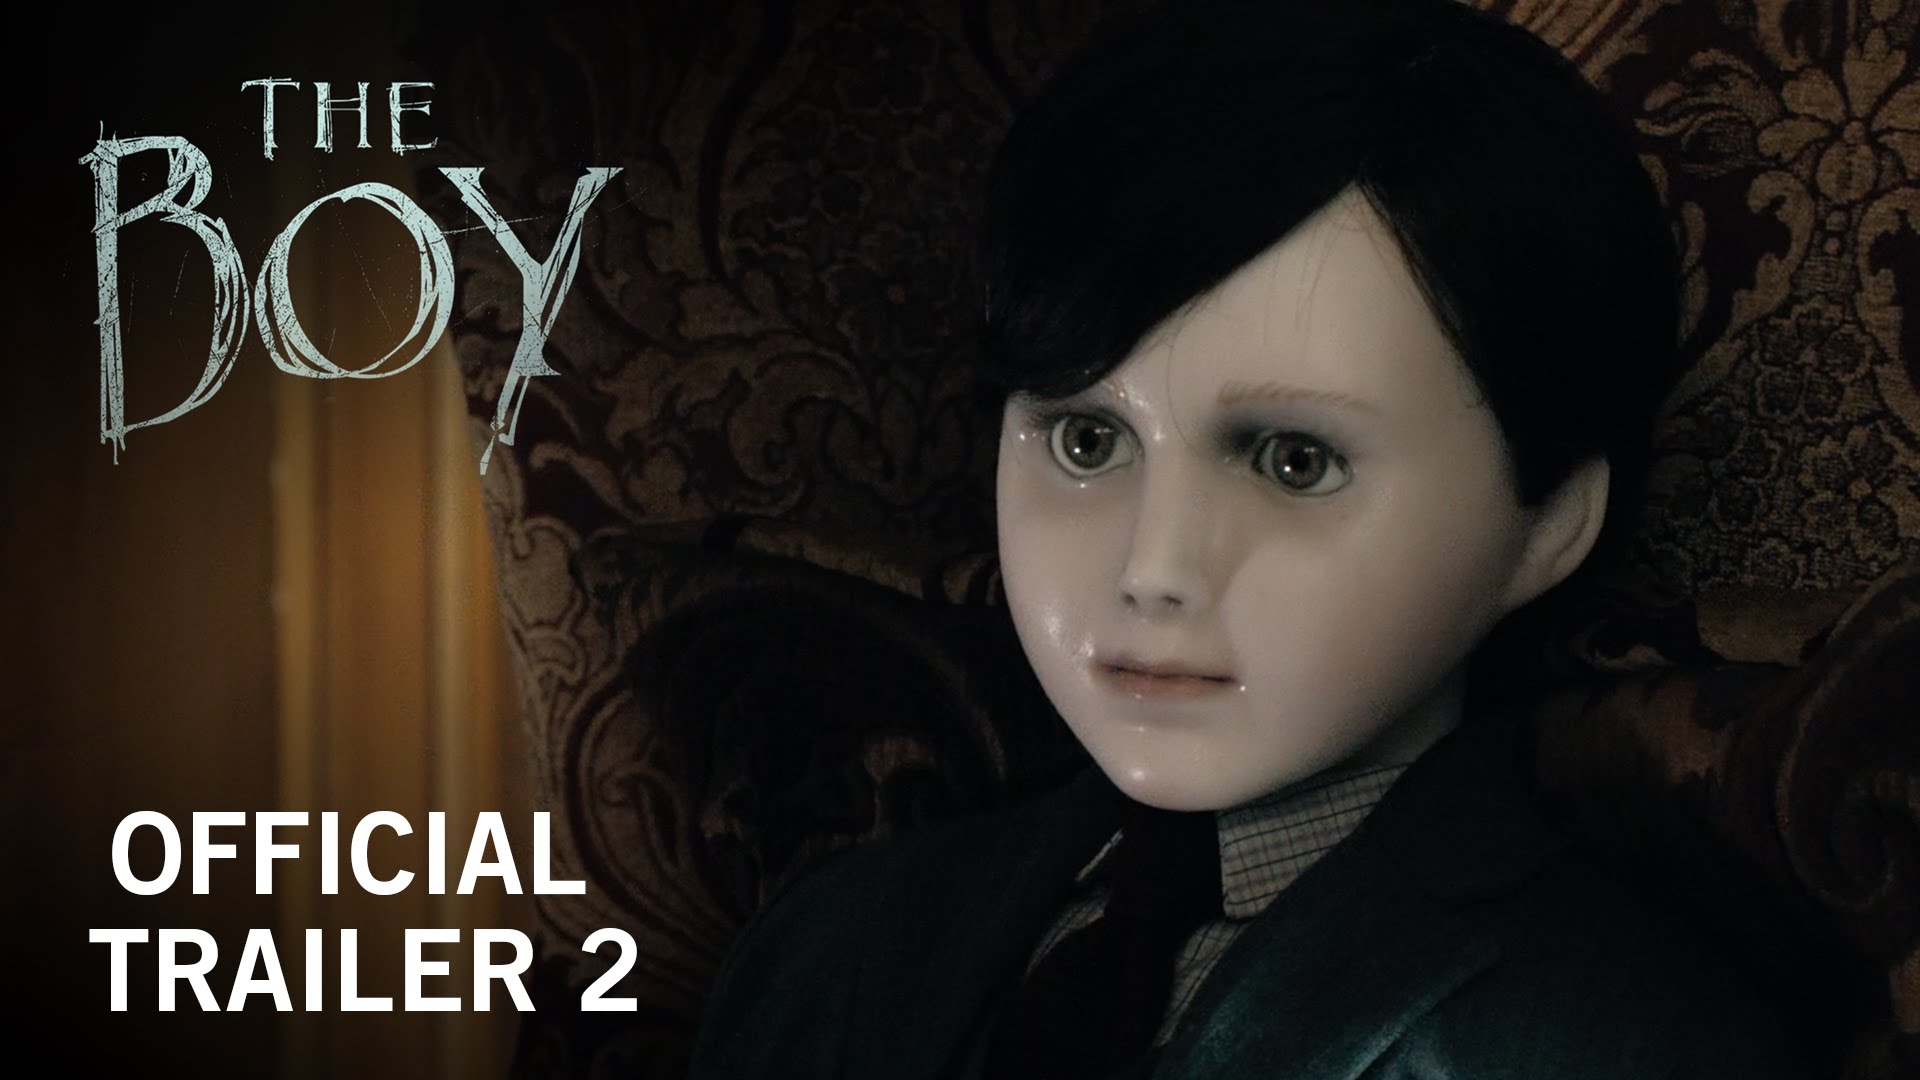 The Boy | Official Trailer 2